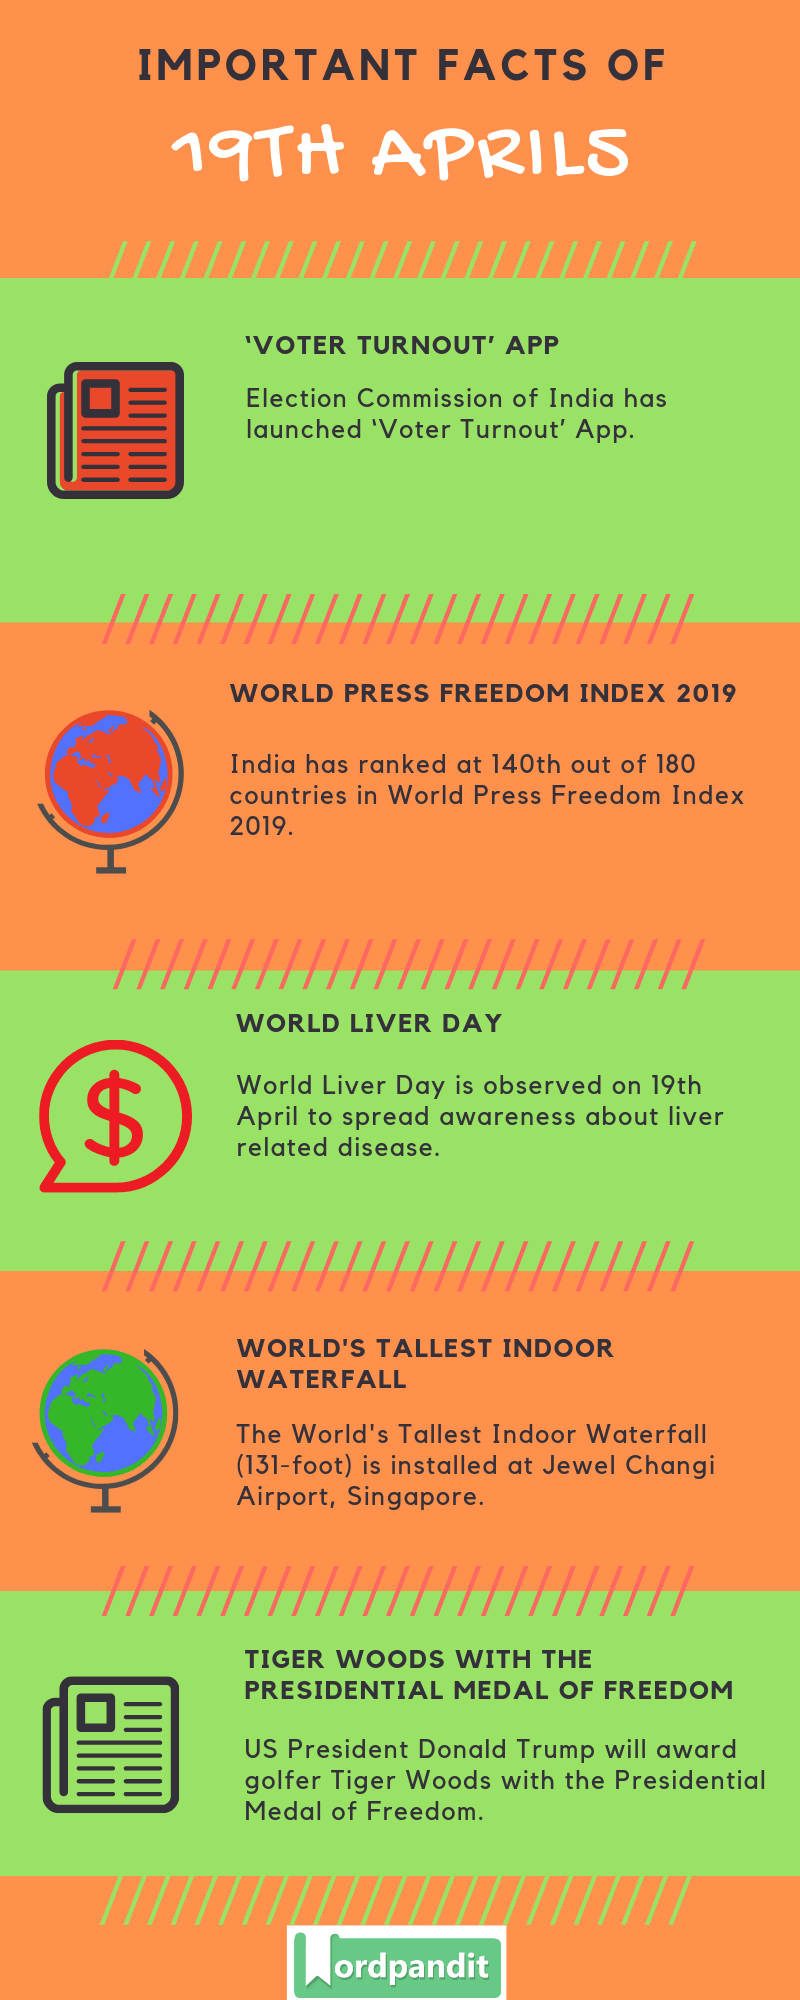 Daily Current Affairs 19 April 2019 Current Affairs Quiz 19 April 2019 Current Affairs Infographic